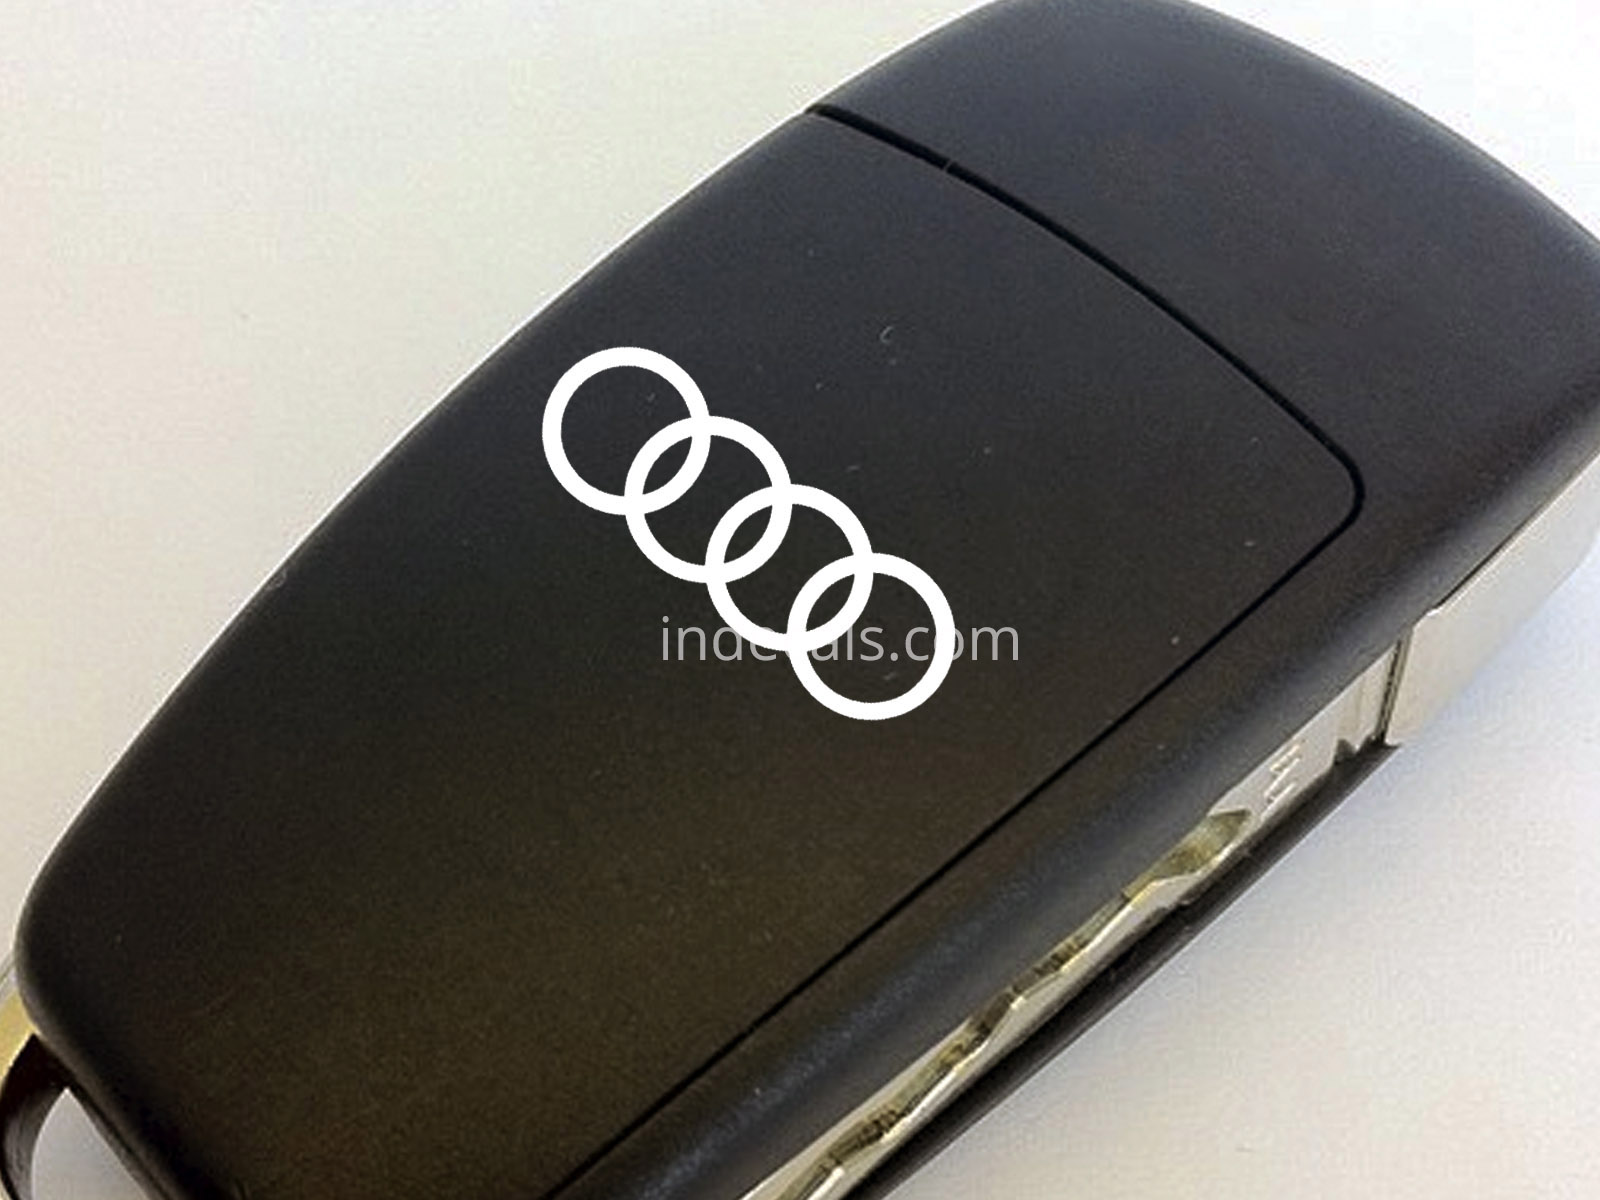 3 x Audi Rings Stickers for Key - White